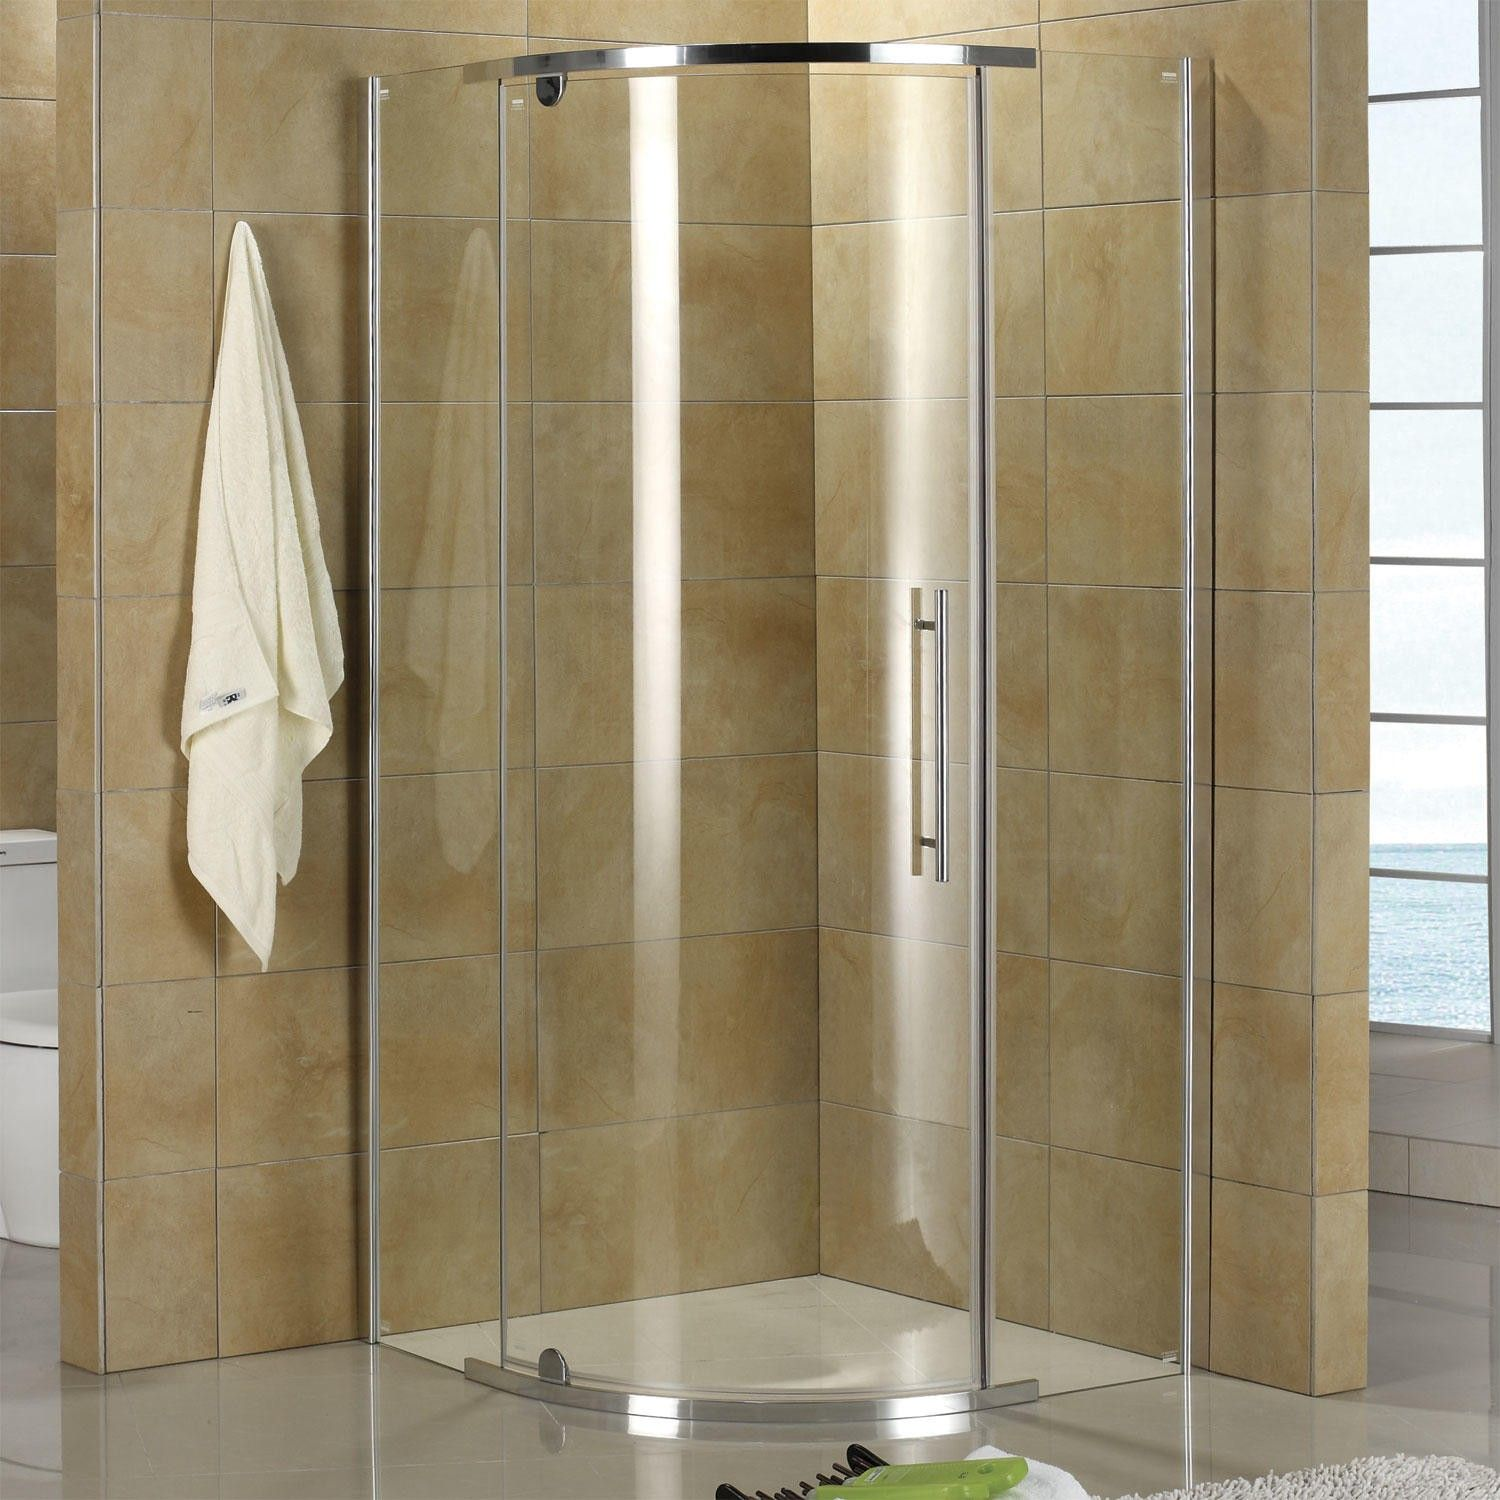 28 corner bath showers corner shower basement ideas corner bath showers 36 quot x 36 quot jackson corner shower enclosure corner shower